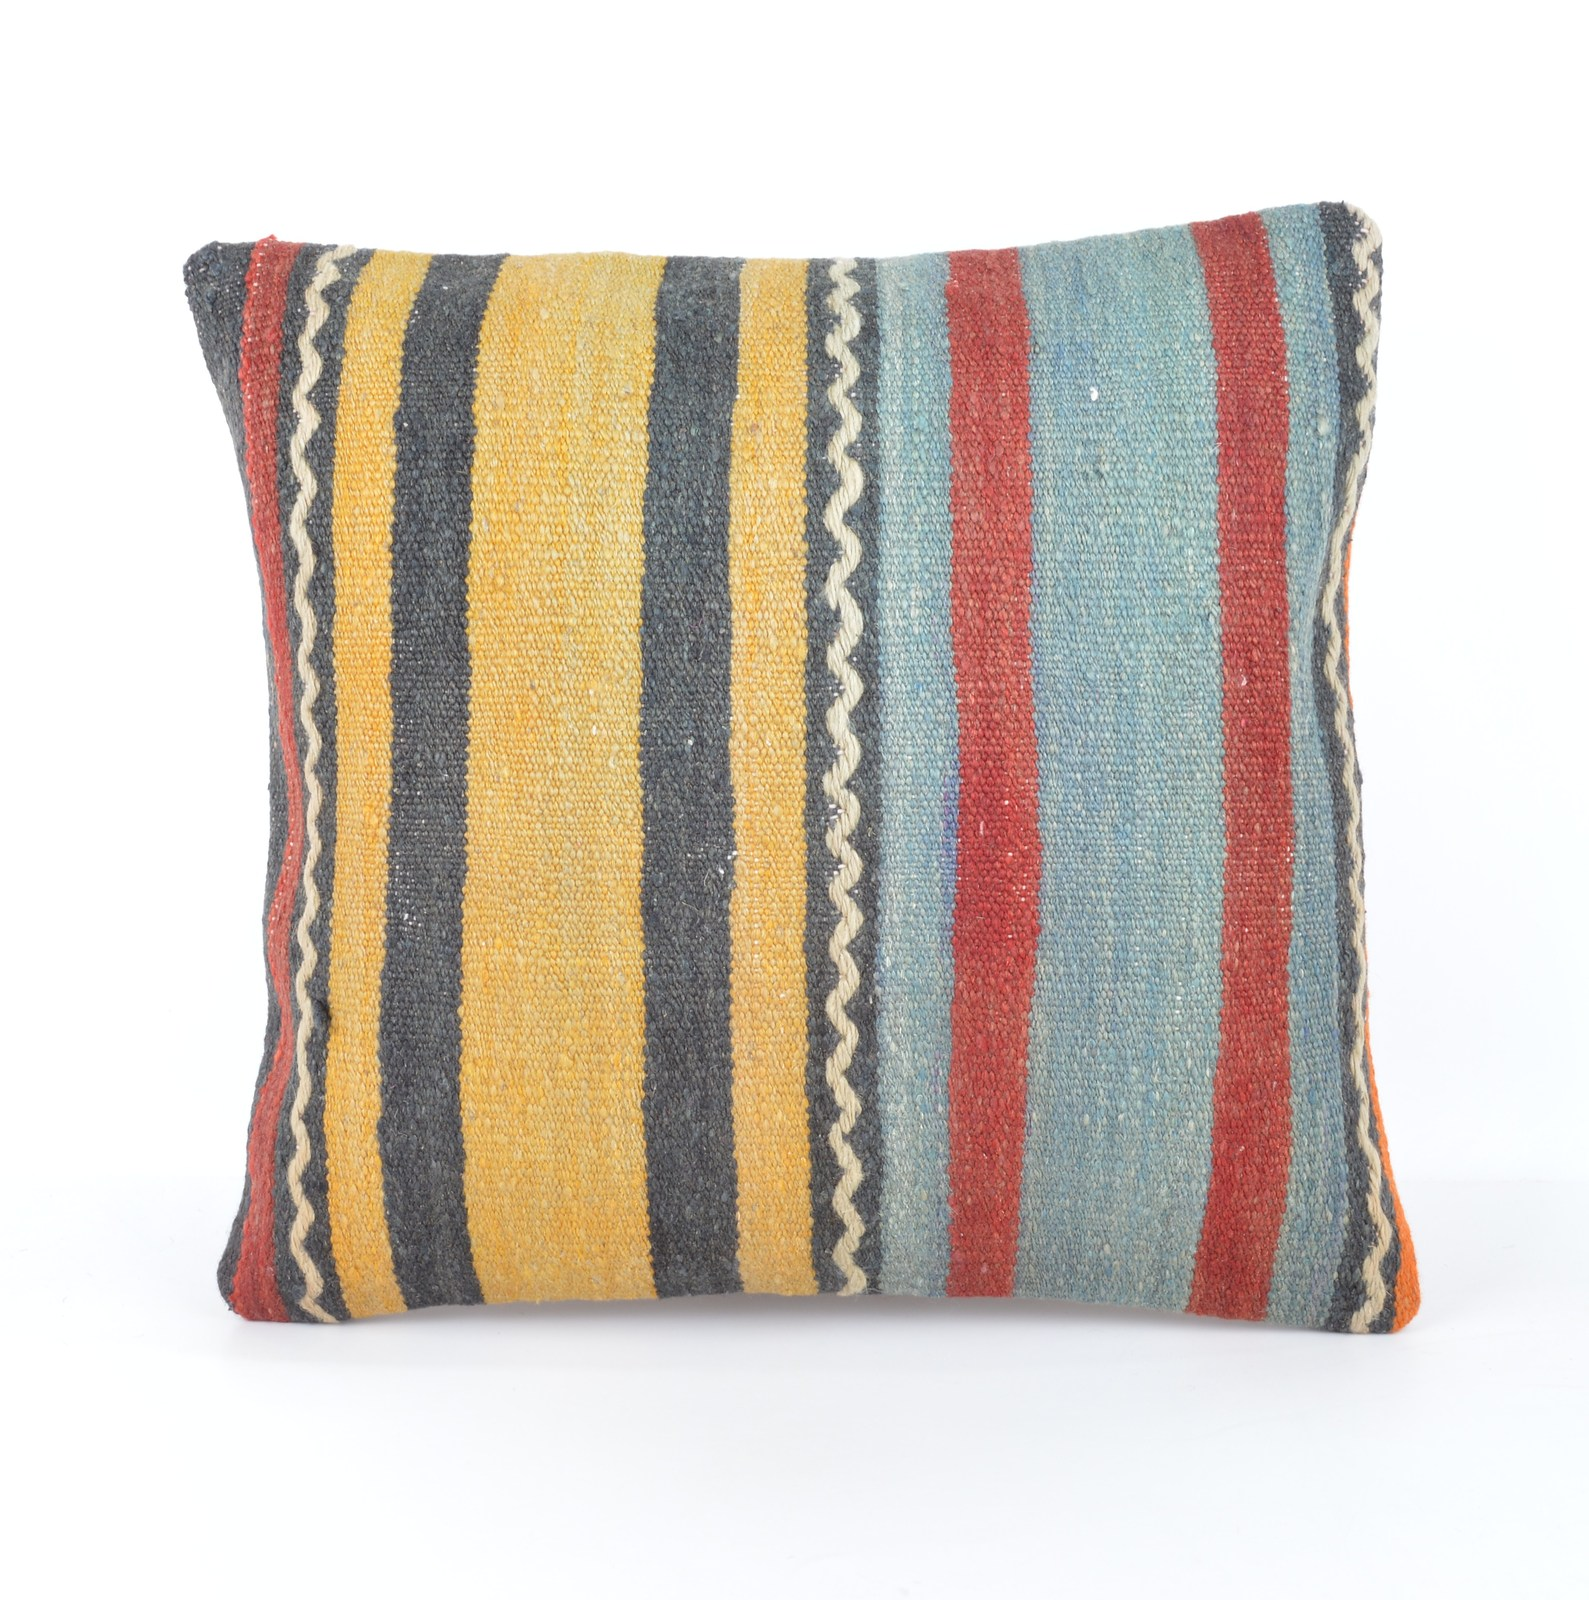 Pillows Online Sale Discount Kilim Pillow Cushion Covers Sale Kilim Throw